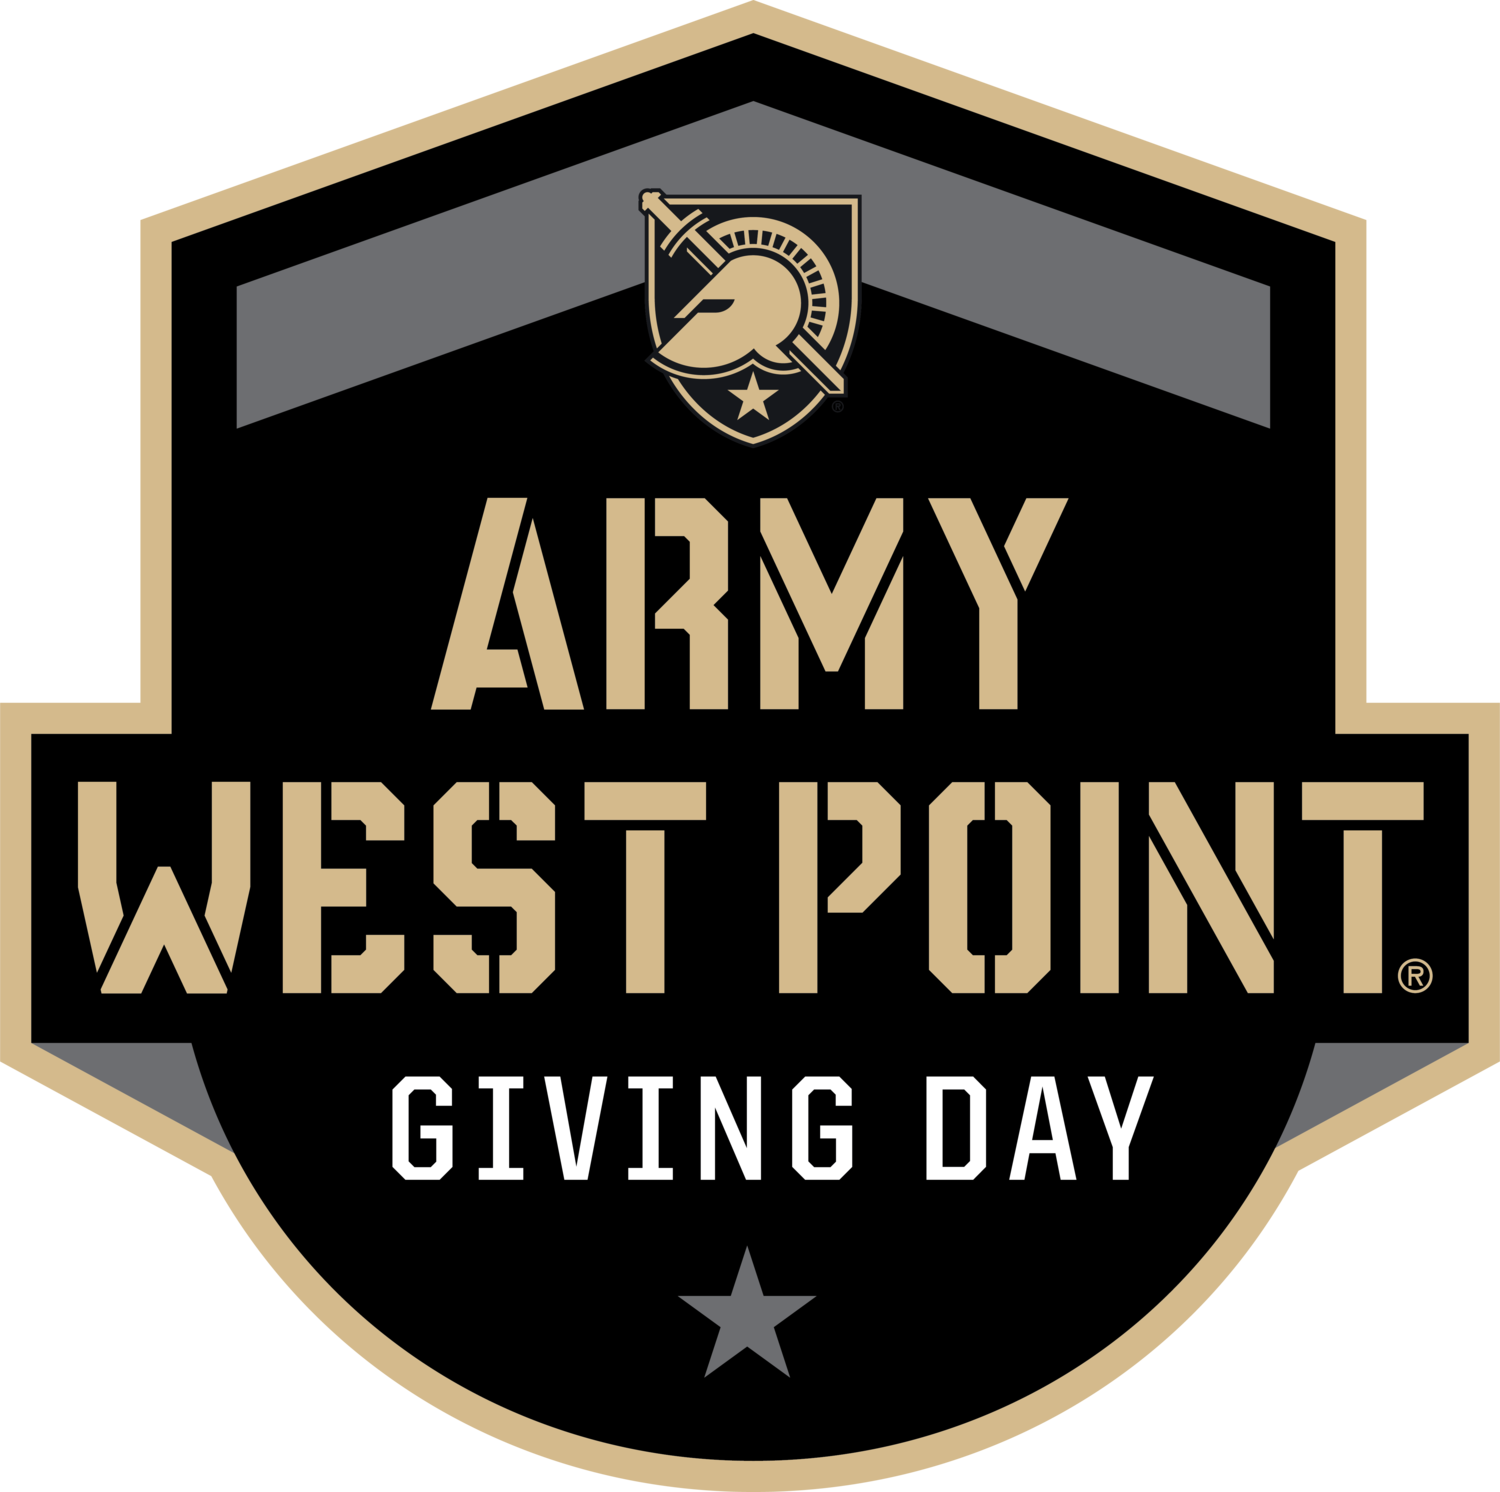 Army West Point Giving Day 2018